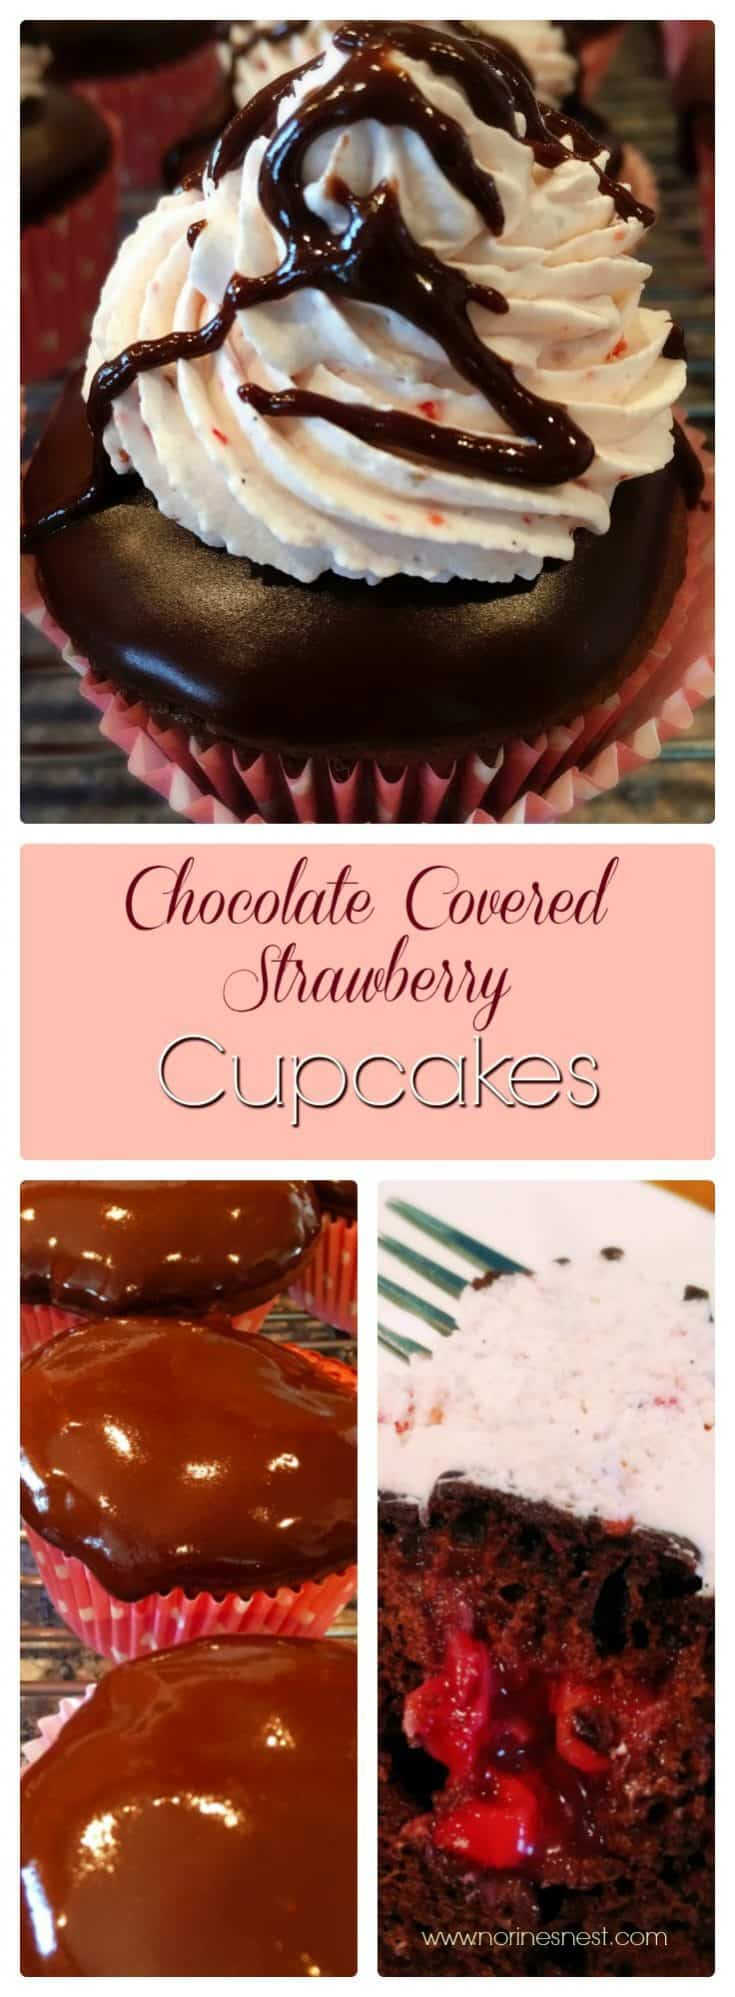 Chocolate Cupcakes filled with fresh strawberry filling, dipped in chocolate glaze, and topped with strawberry whipping cream